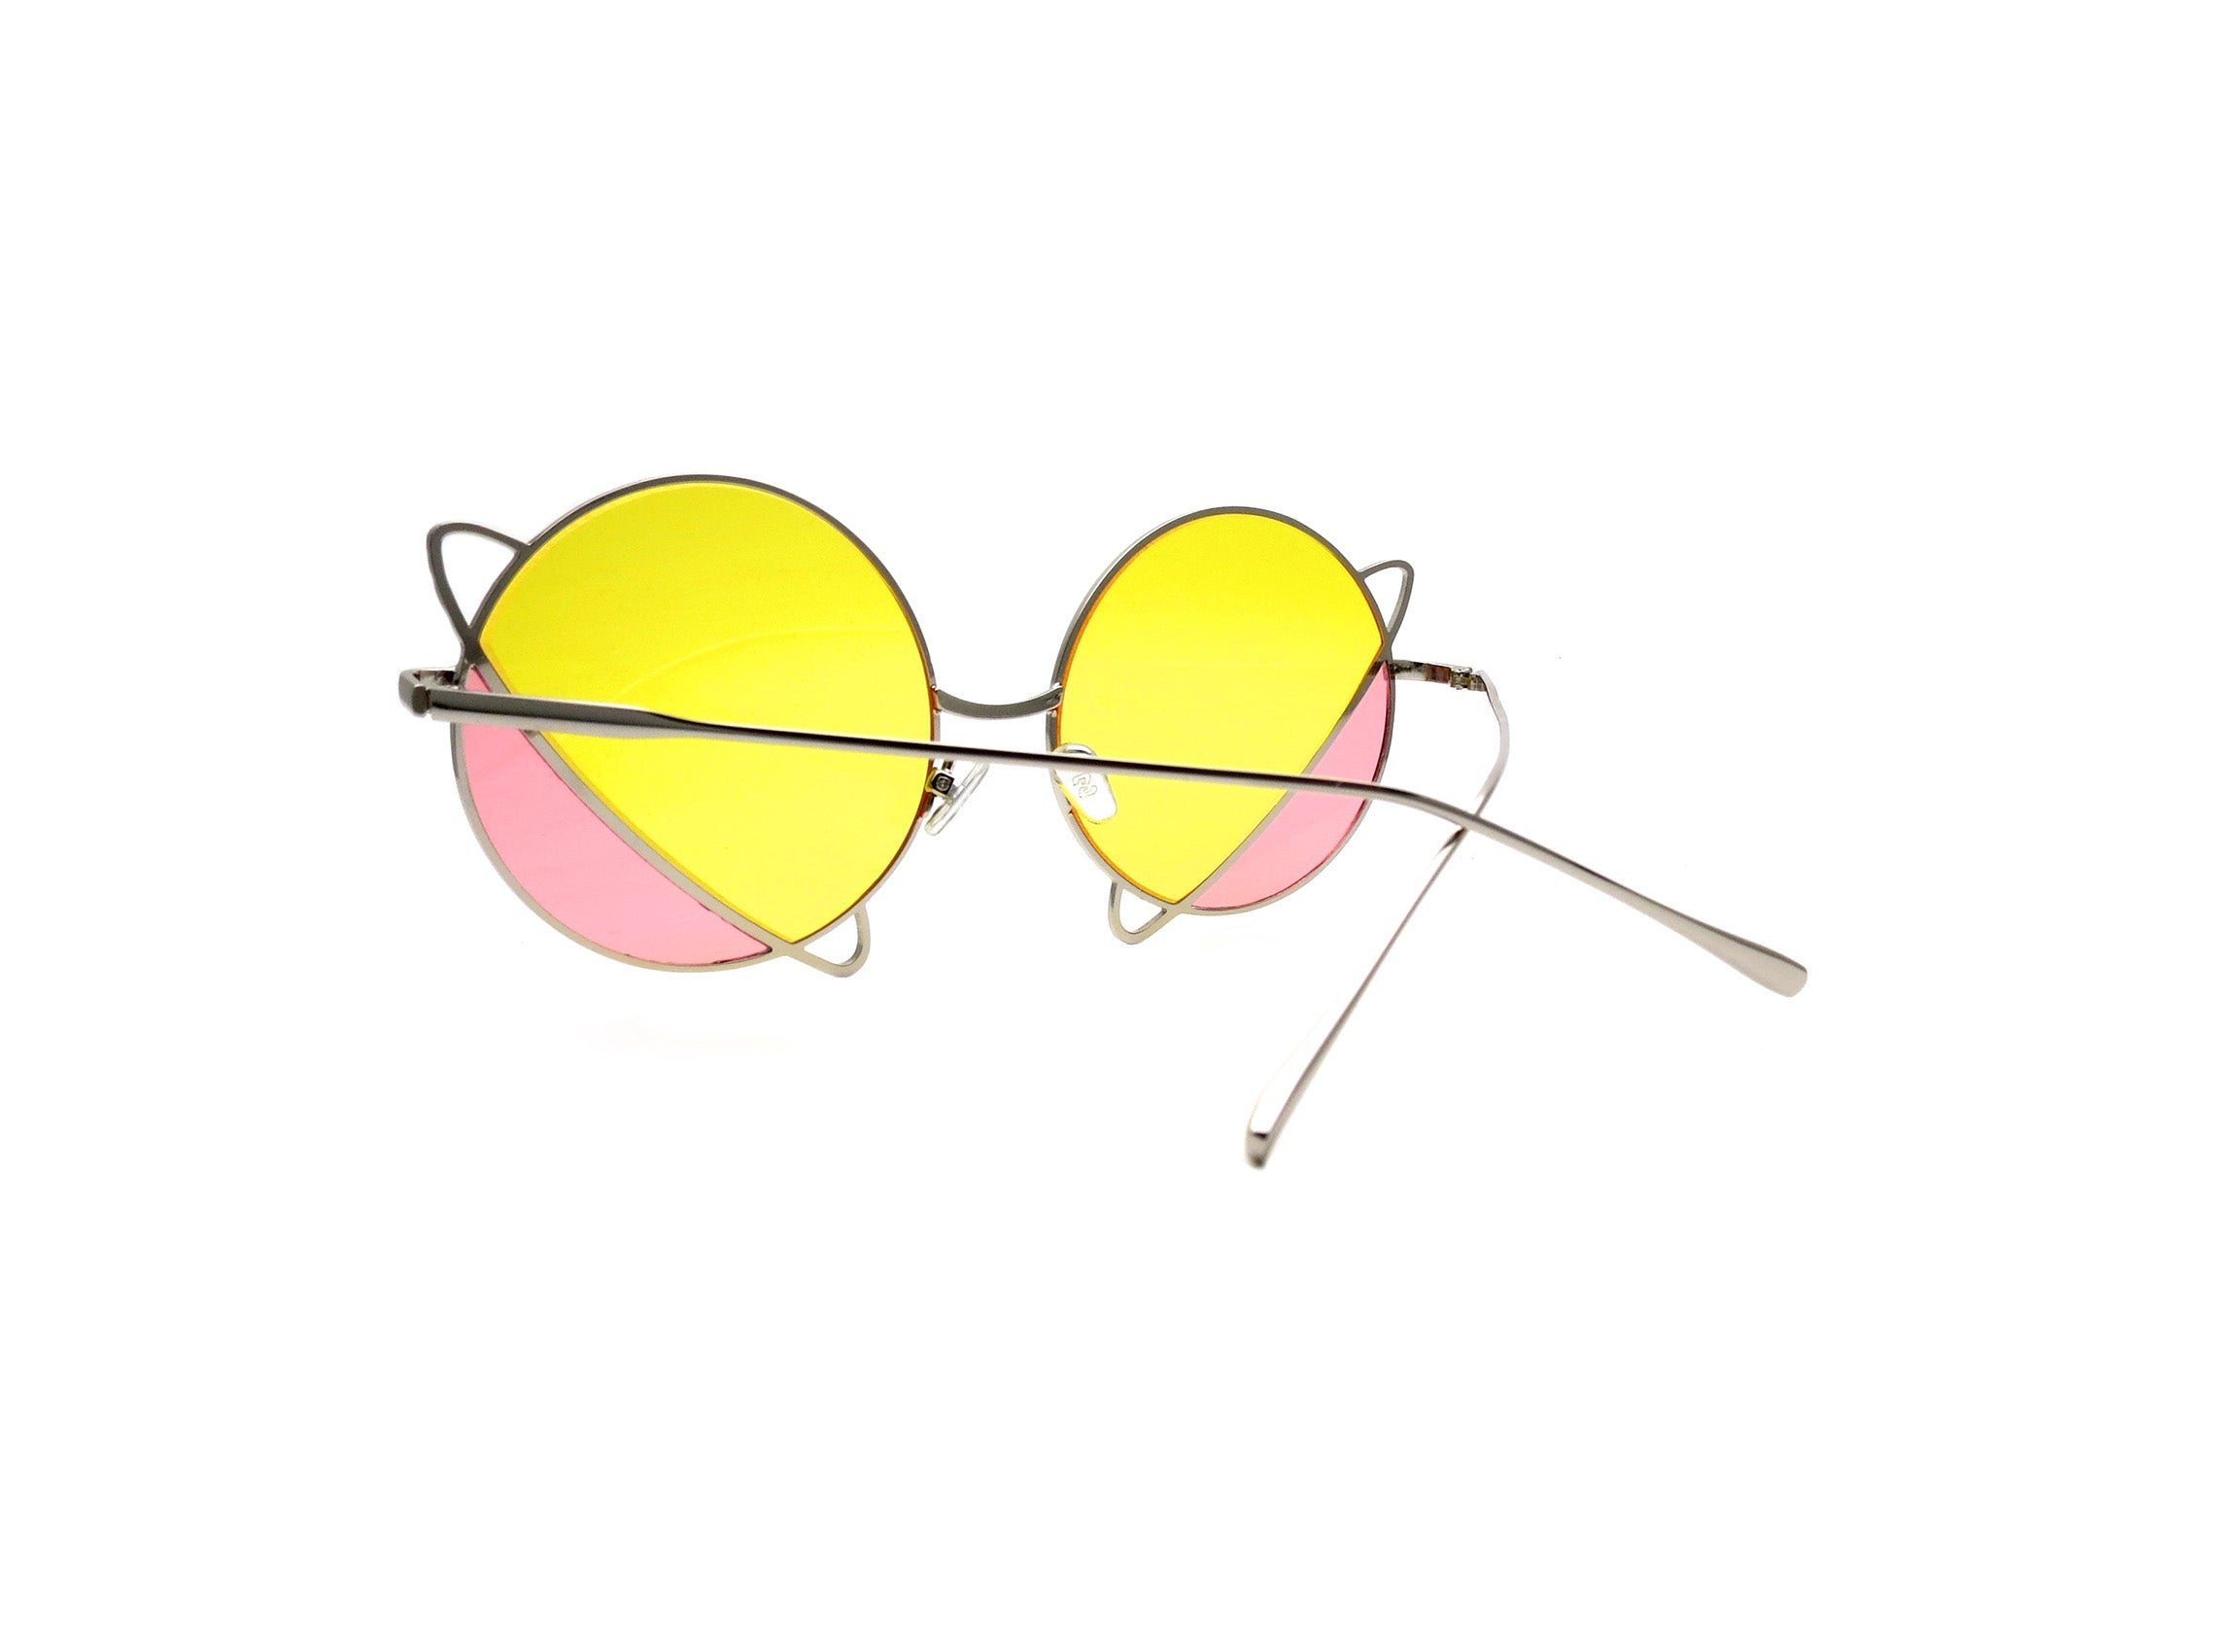 ALEK Sunglasses